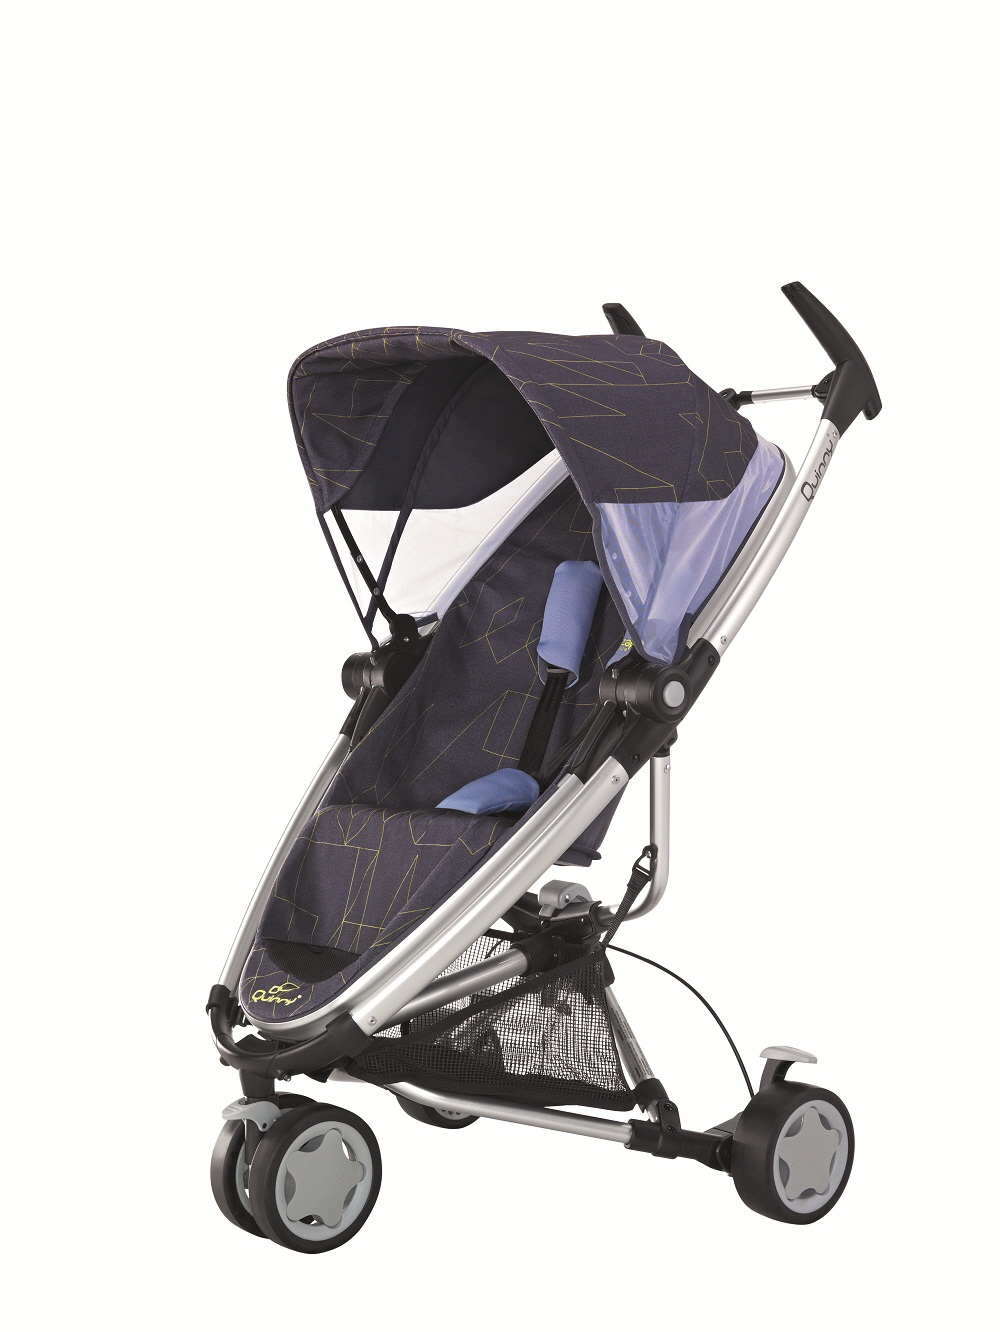 quinny buggy zapp xtra 2012 buy at kidsroom brand shops quinny quinny strollers buggies. Black Bedroom Furniture Sets. Home Design Ideas